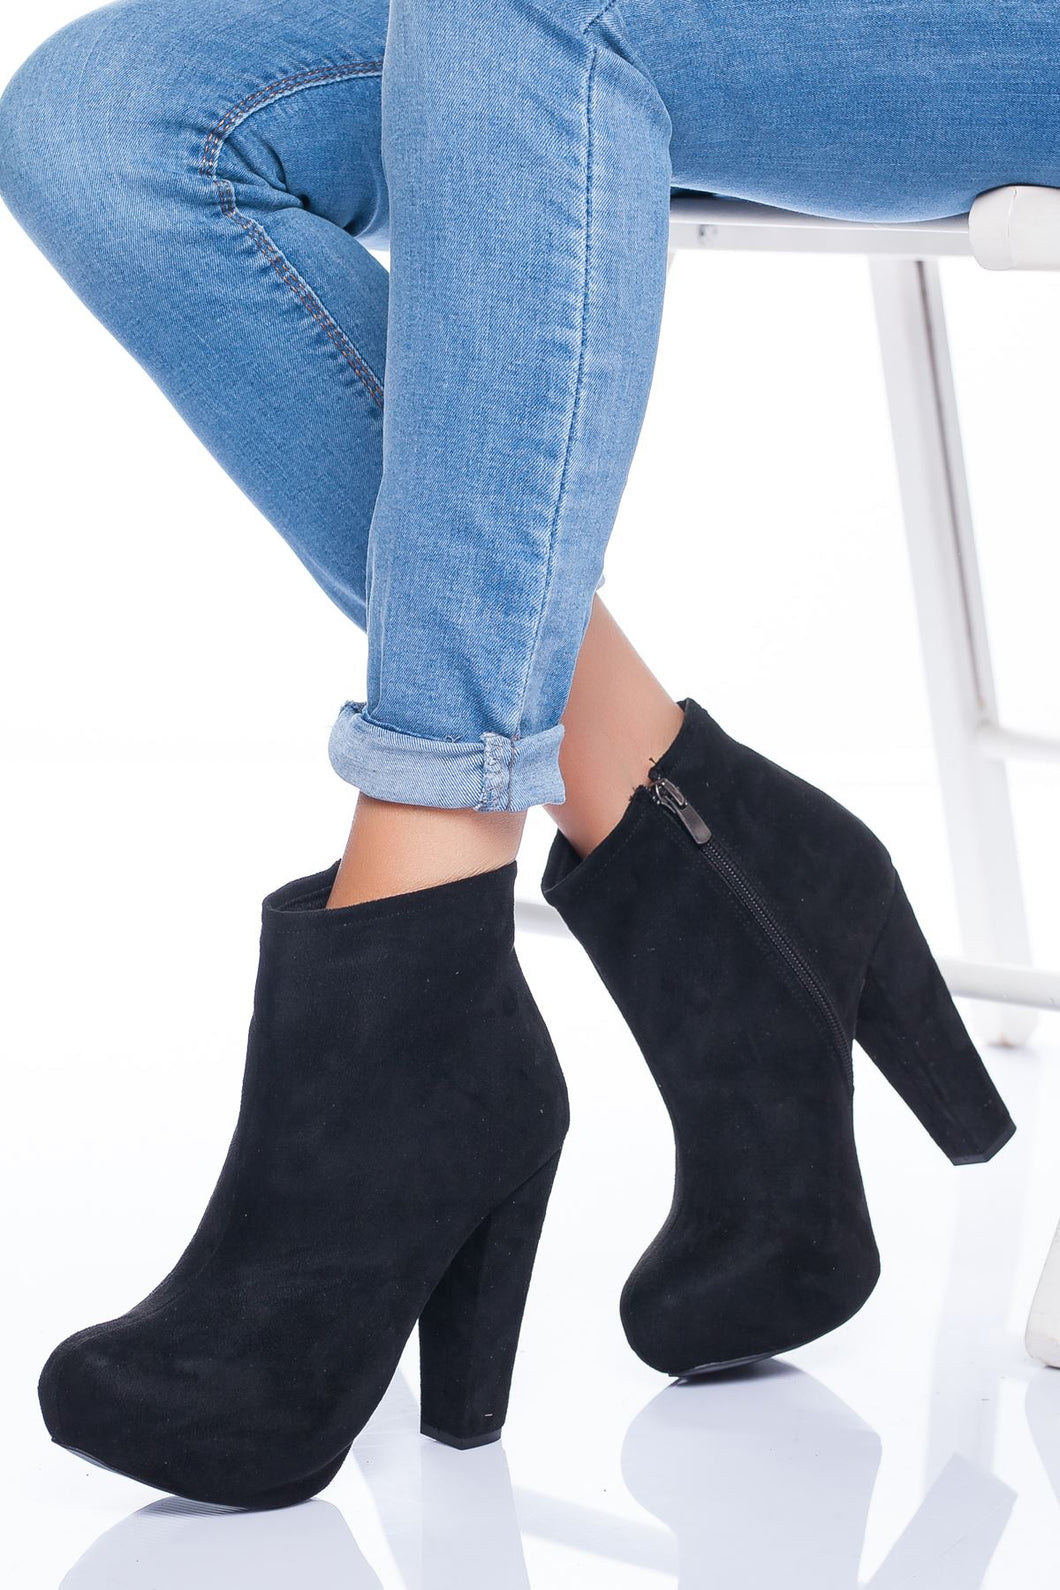 Women's Black Suede Heeled Boots